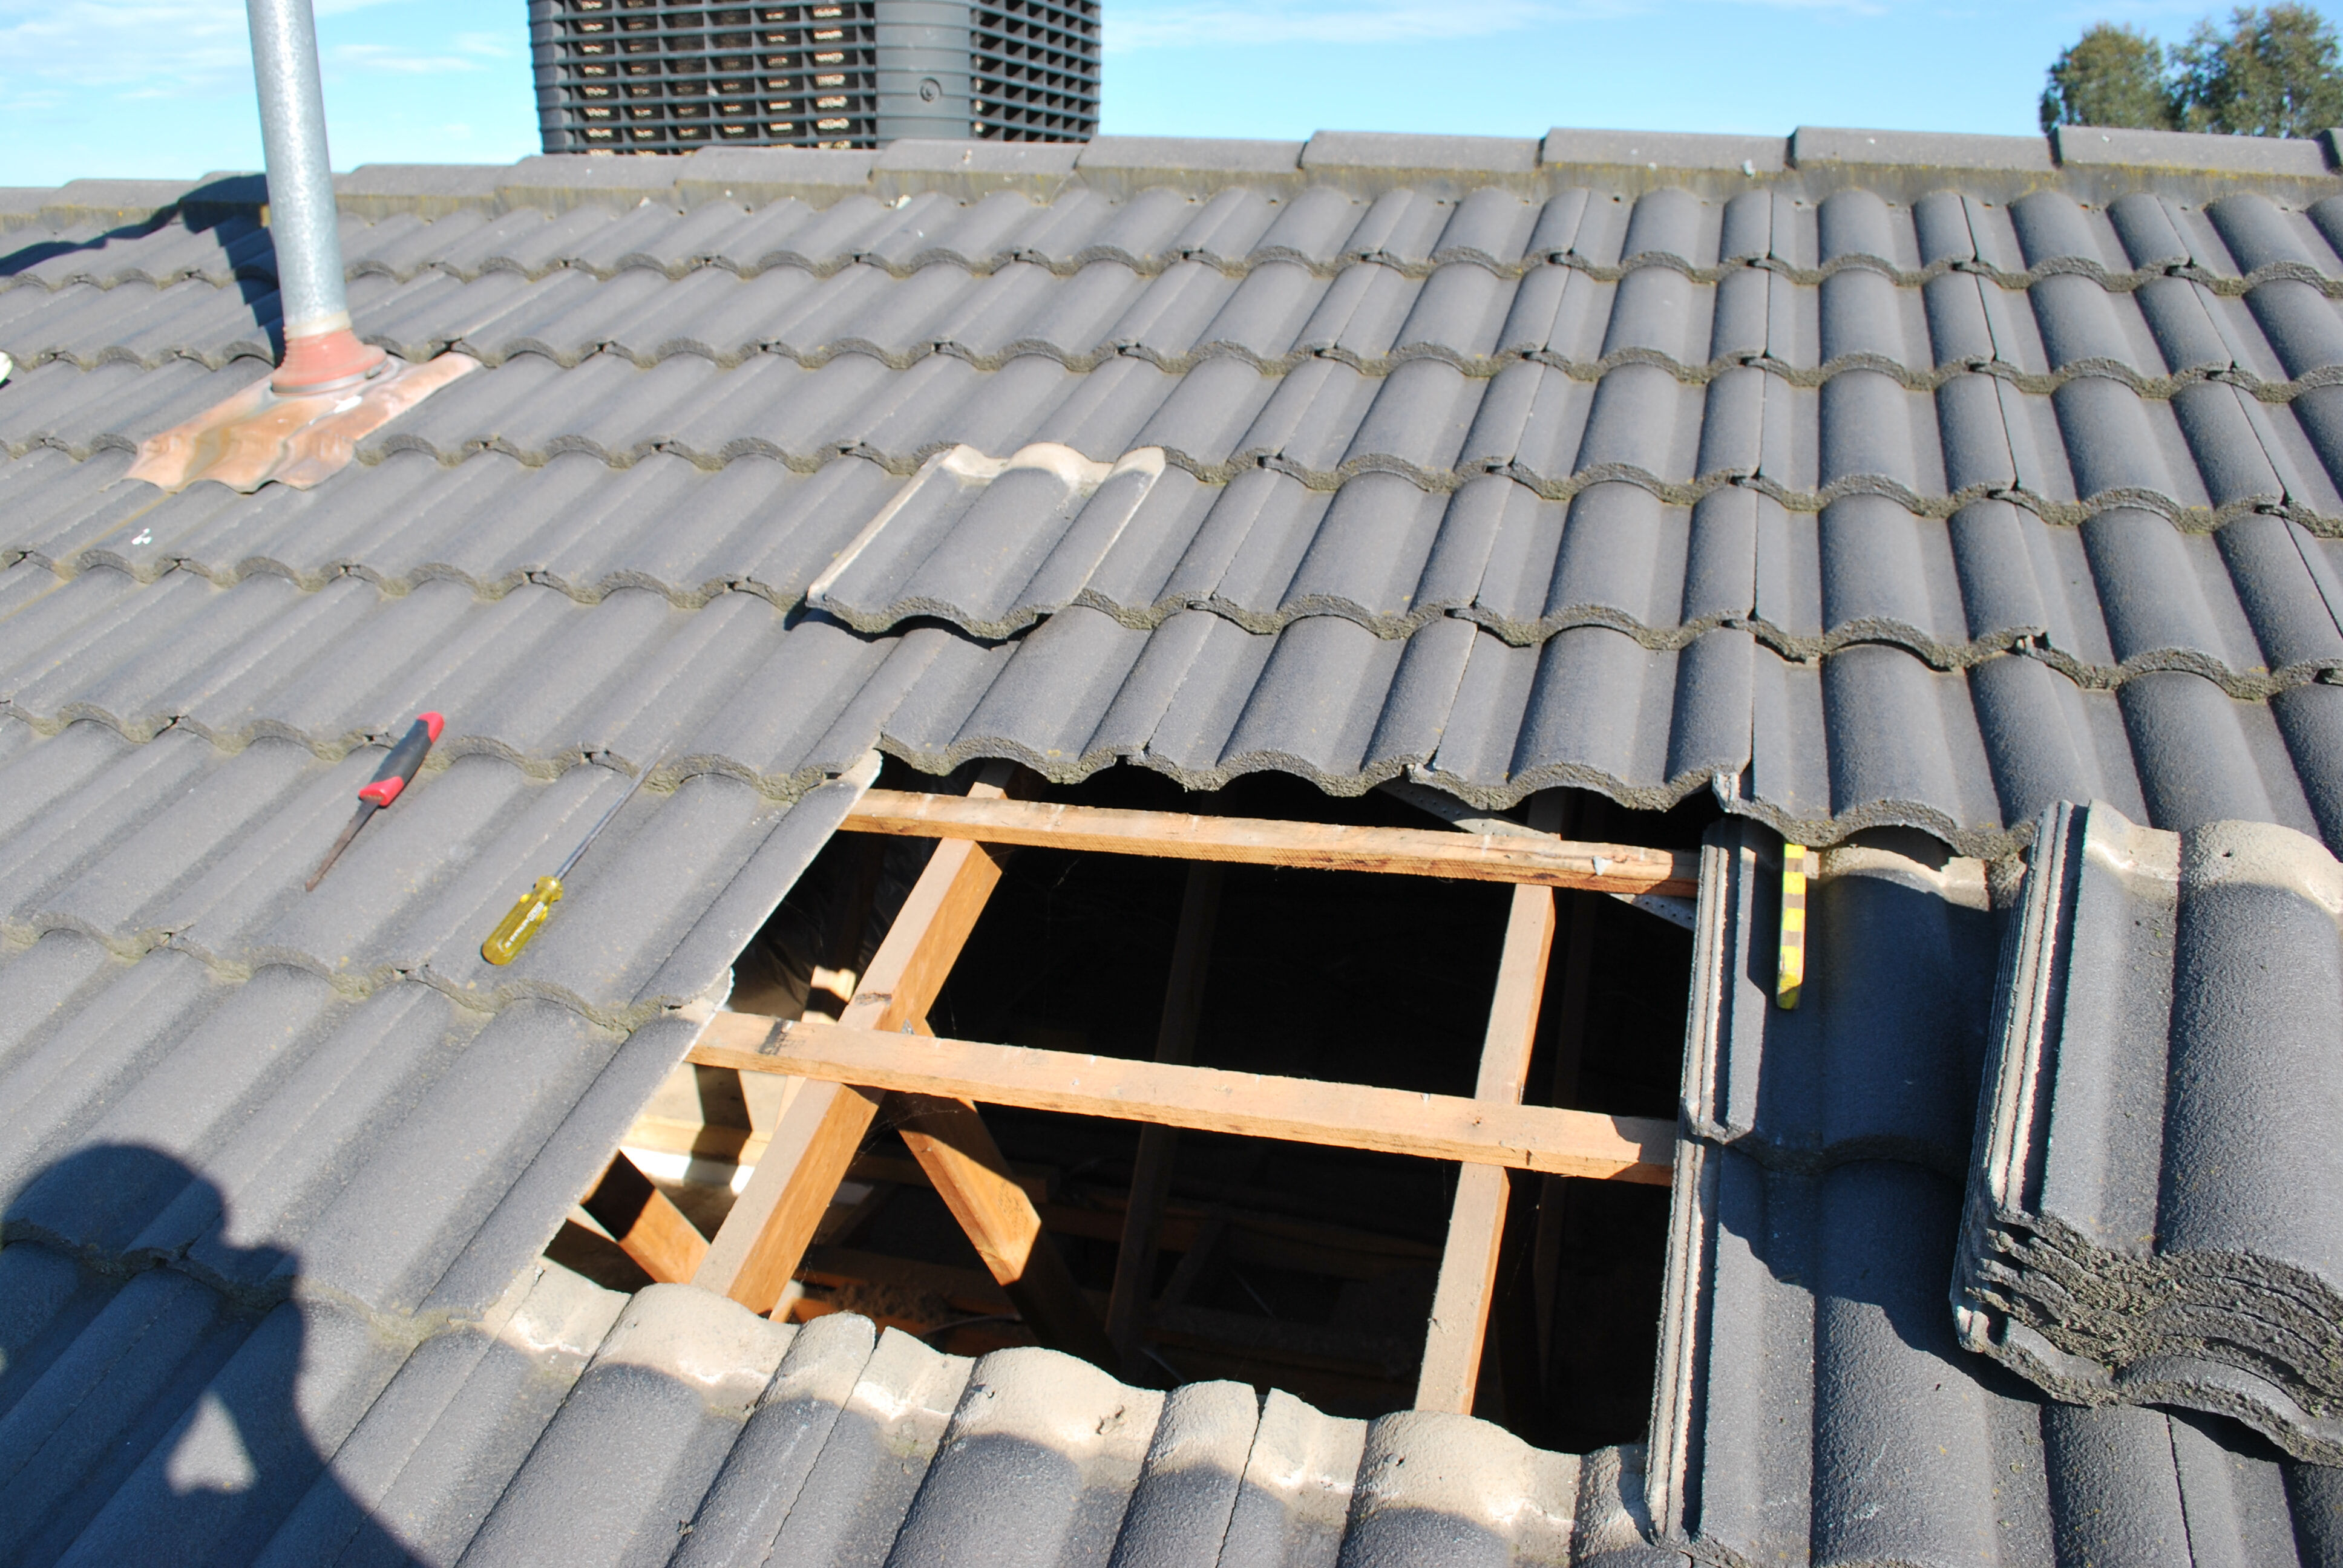 Install duct pipe to rangehood through the roof tiles 2